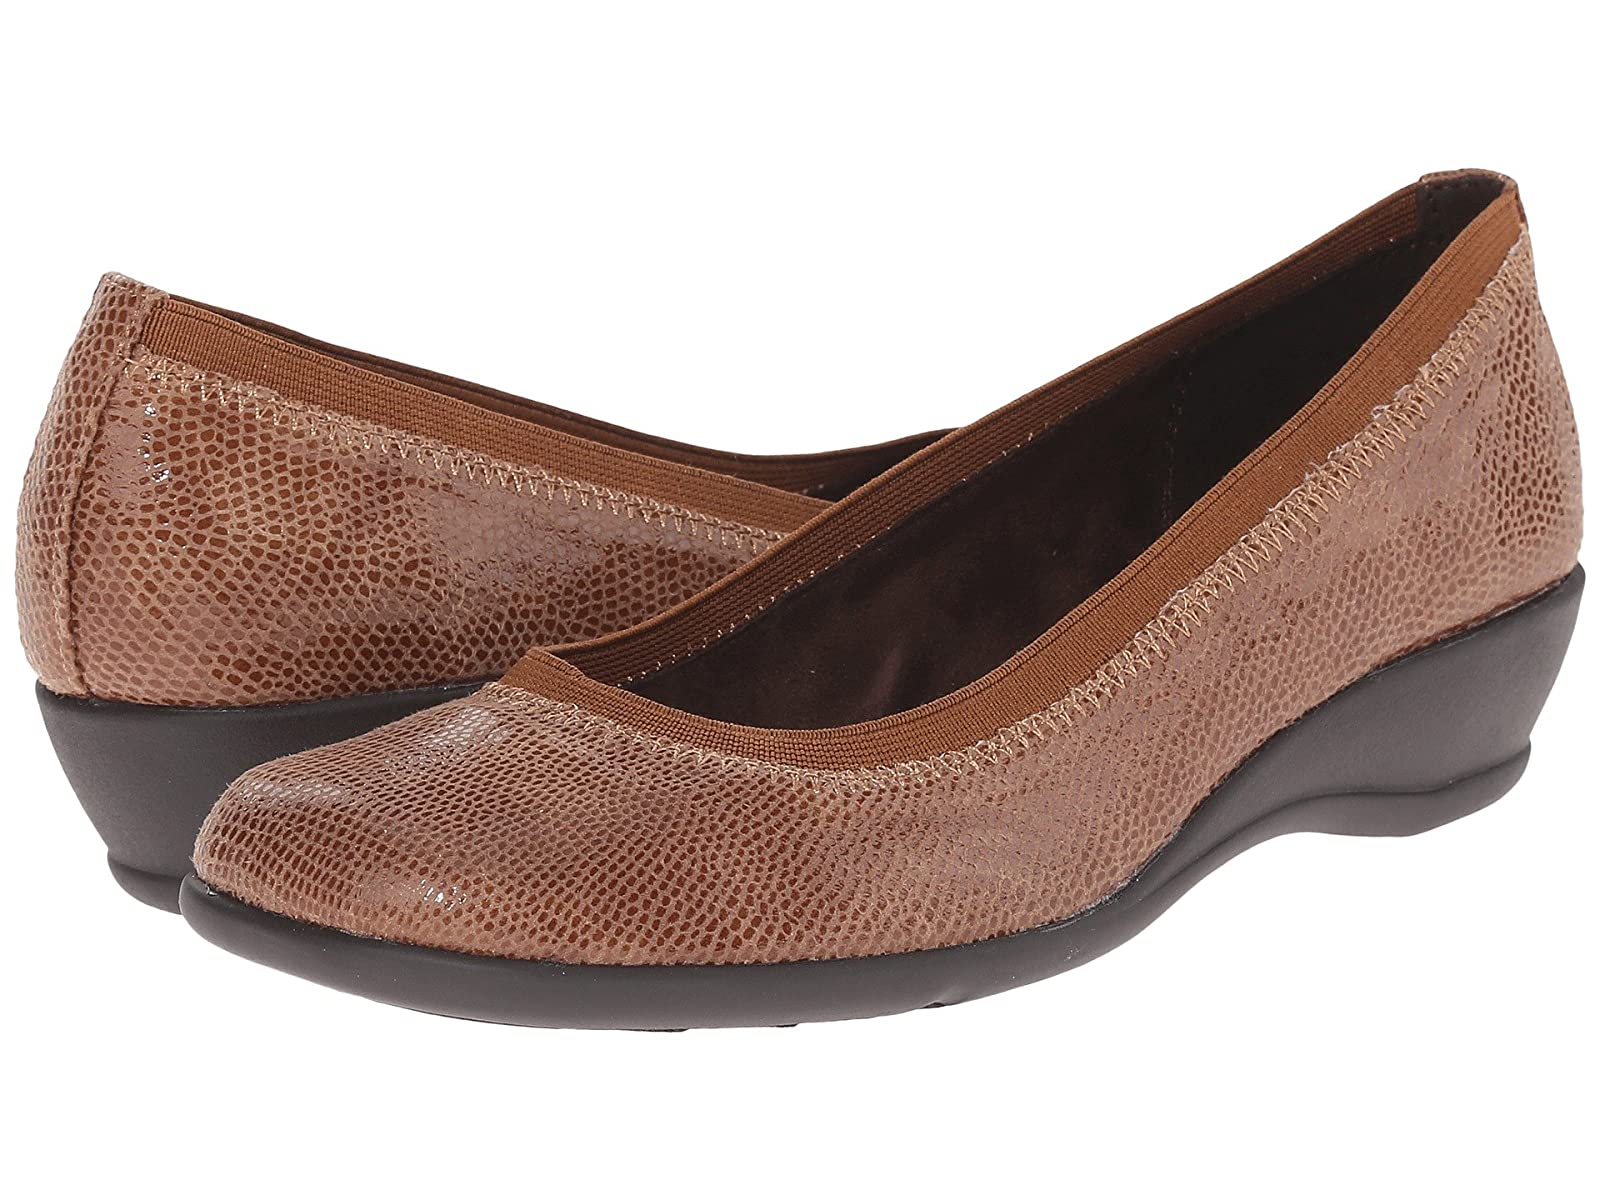 Soft Style RoganCheap and distinctive eye-catching shoes